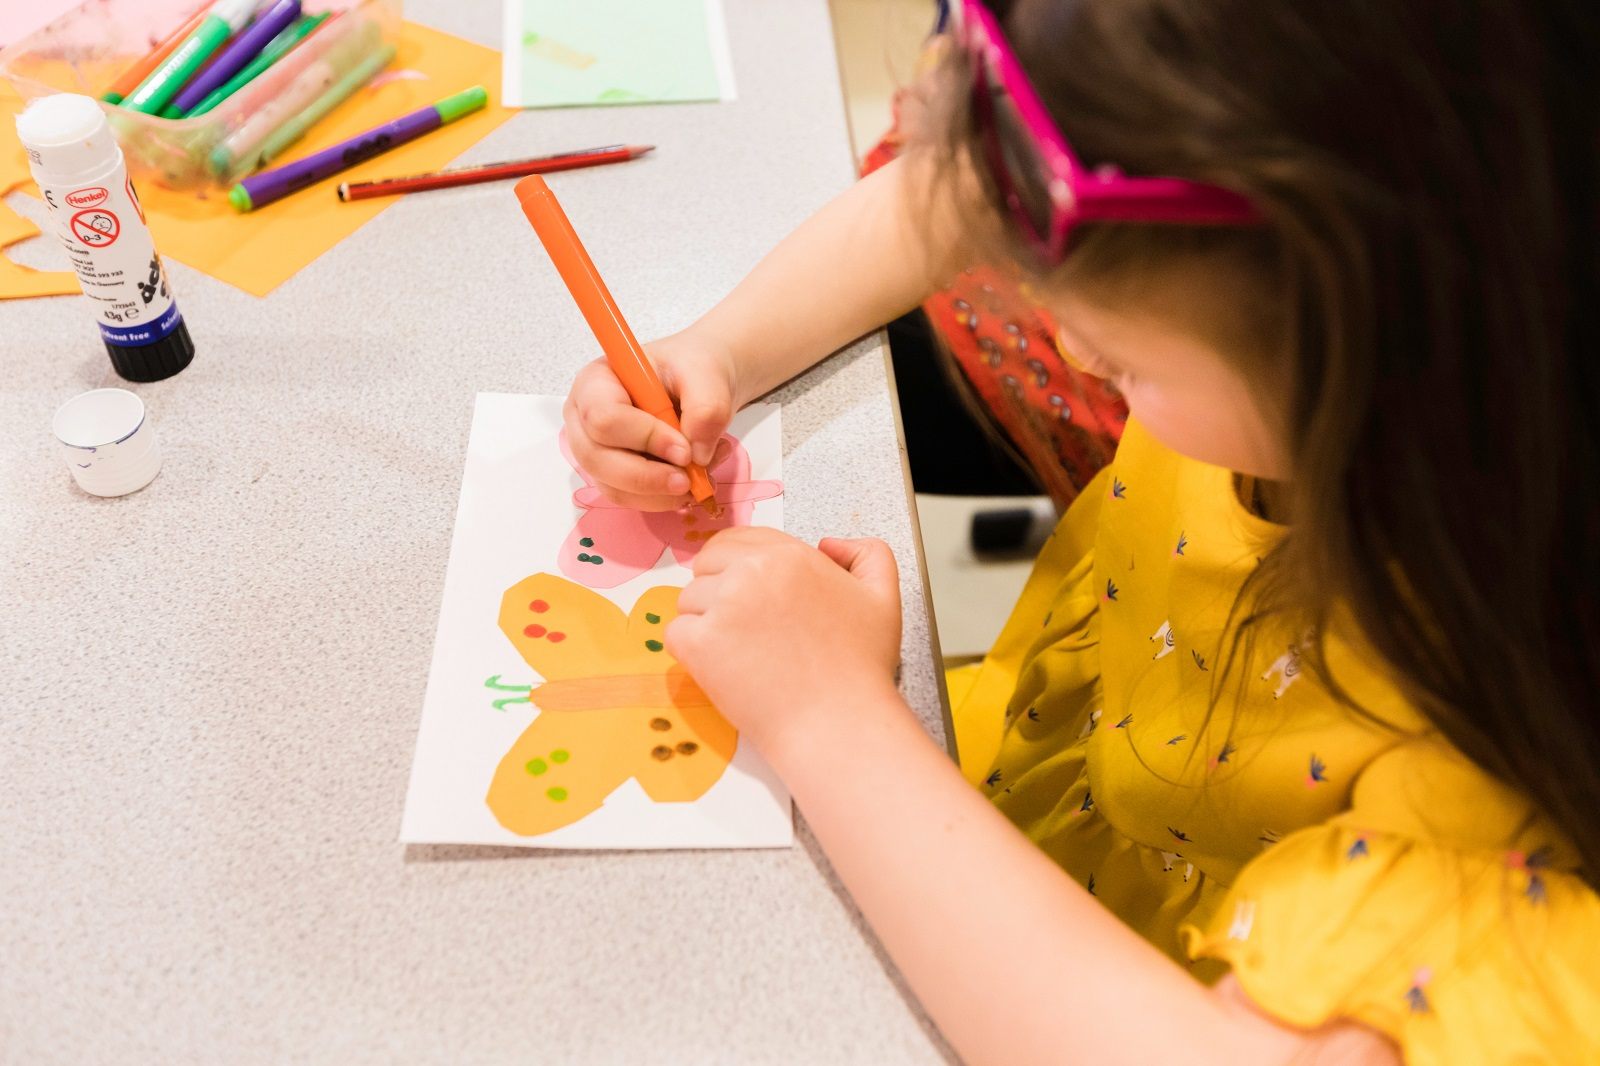 A young girl decorstes a piece of paper with a yellow butterfly design